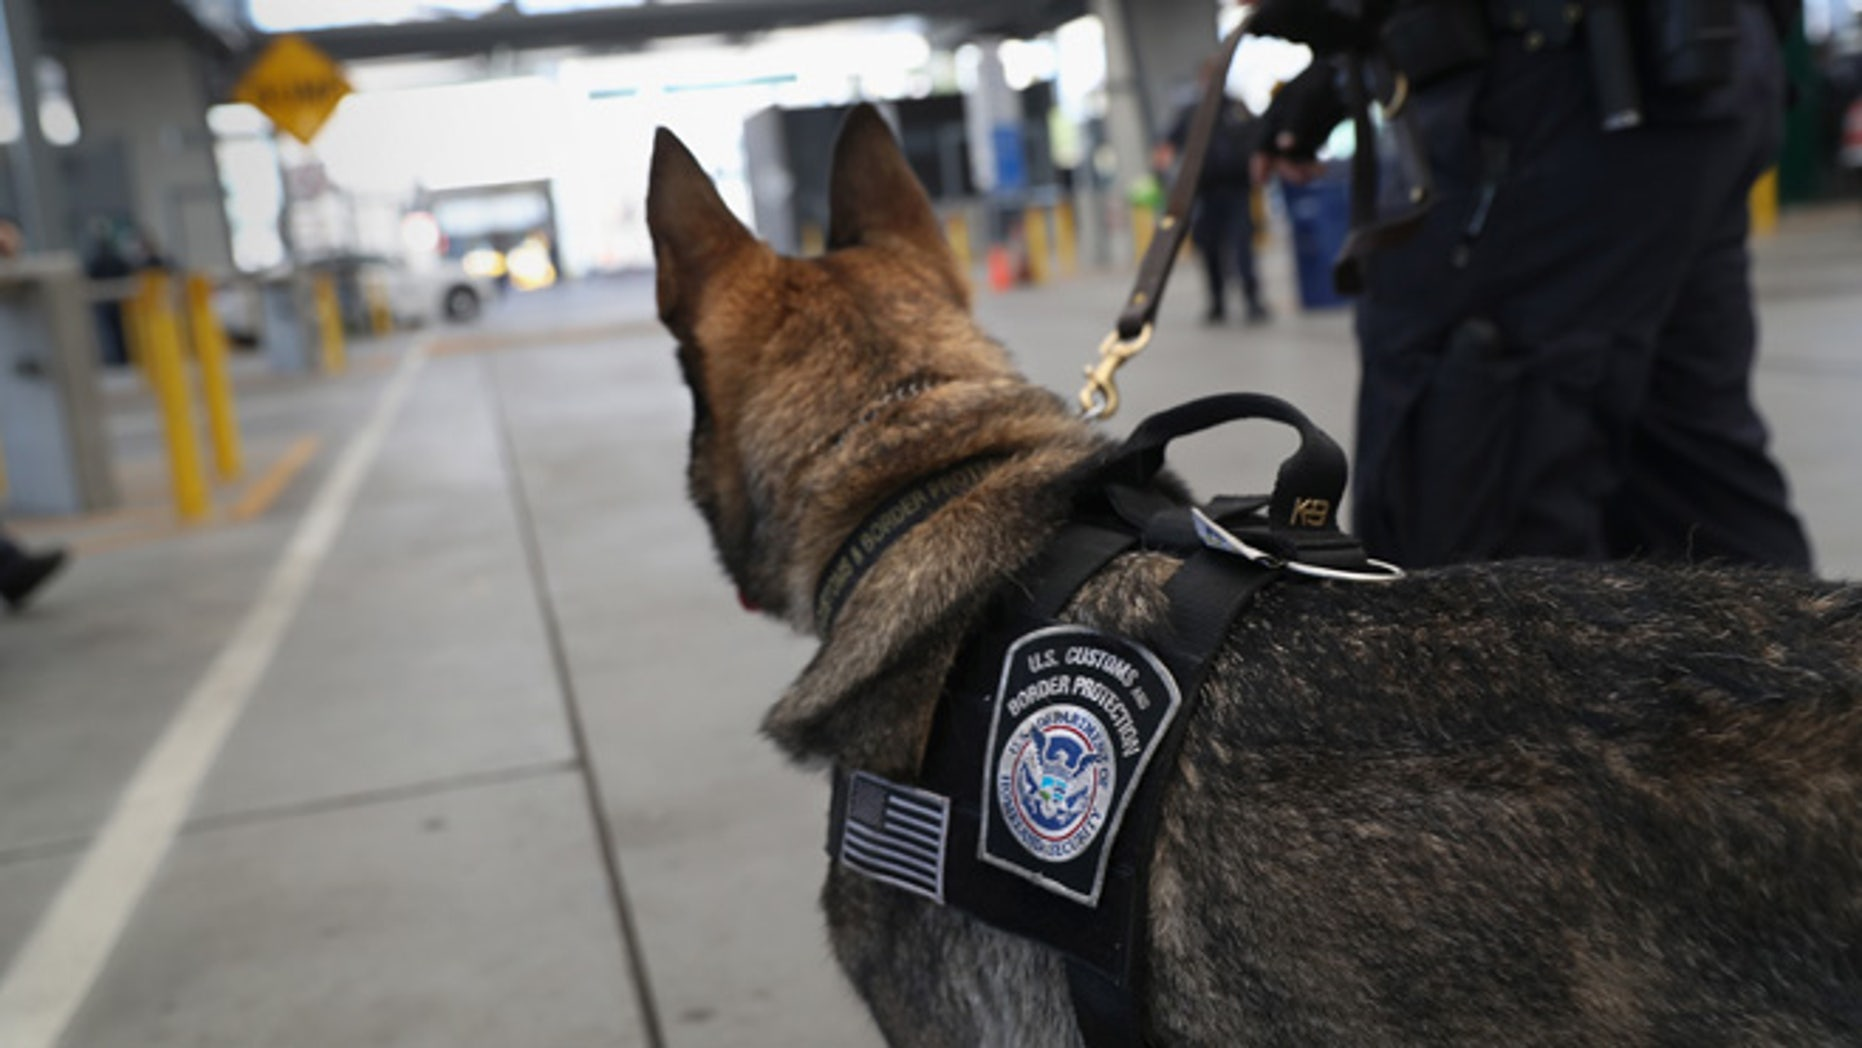 SAN YSIDRO, CA - SEPTEMBER 23:  A U.S. Customs and Border Protection K-9 unit waits to check vehicles crossing into the United States from Mexico on September 23, 2016 in San Ysidro, California. Daily more than 10,000 people legally cross the border, mostly for work, at San Ysidro, making it the busiest port of entry on the 2,000 mile border between the United States and Mexico. Securing the border and controlling illegal immigration have become key issues in the U.S. Presidential campaign.  (Photo by John Moore/Getty Images)